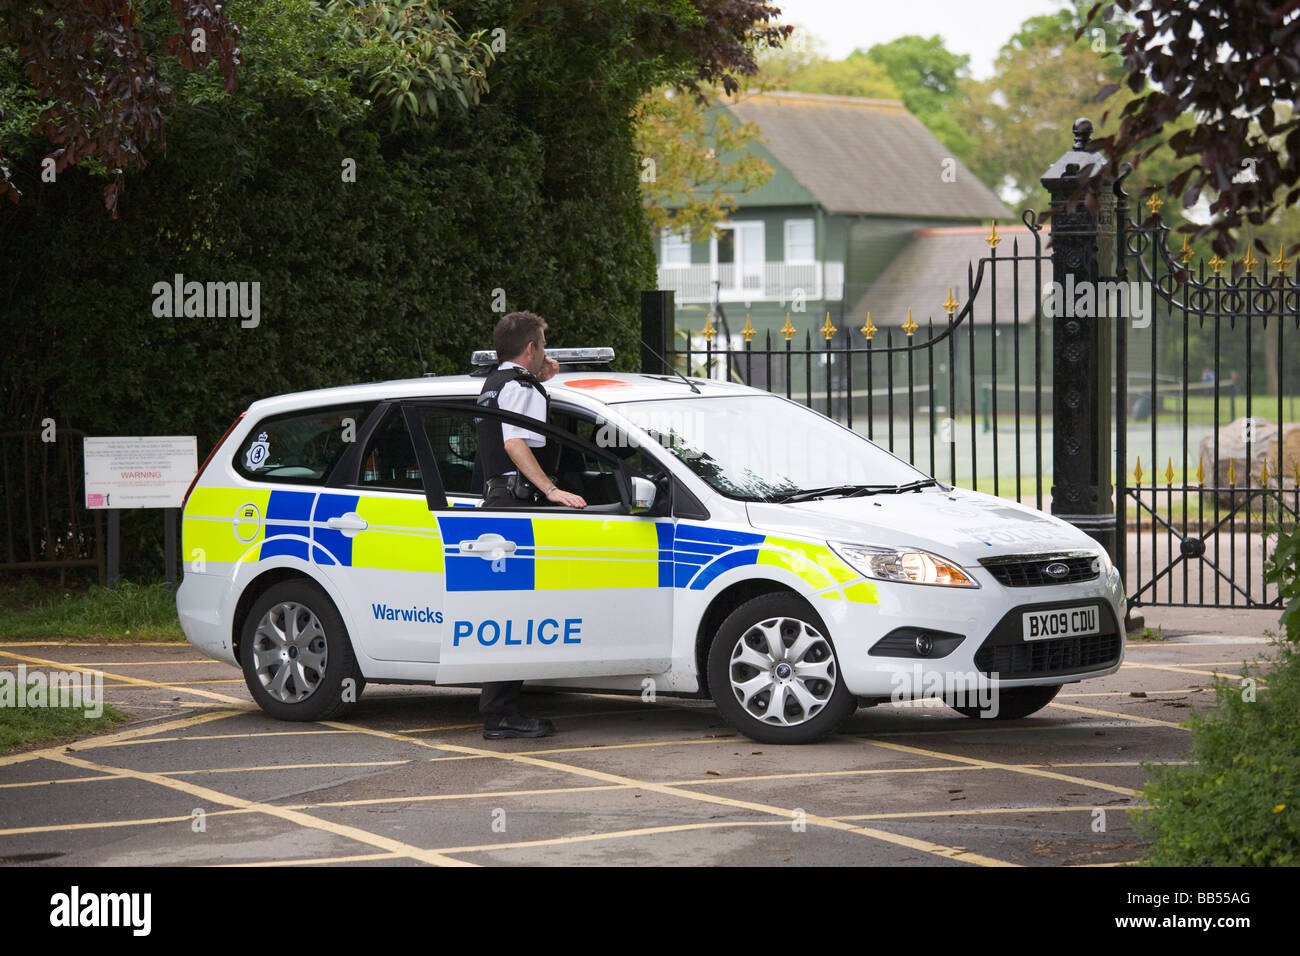 Stock Photo - Warwickshire Police - Police Officer and Ford Focus police car respond to a call out in Leamington Spa Warwickshire & Warwickshire Police - Police Officer and Ford Focus police car ... markmcfarlin.com